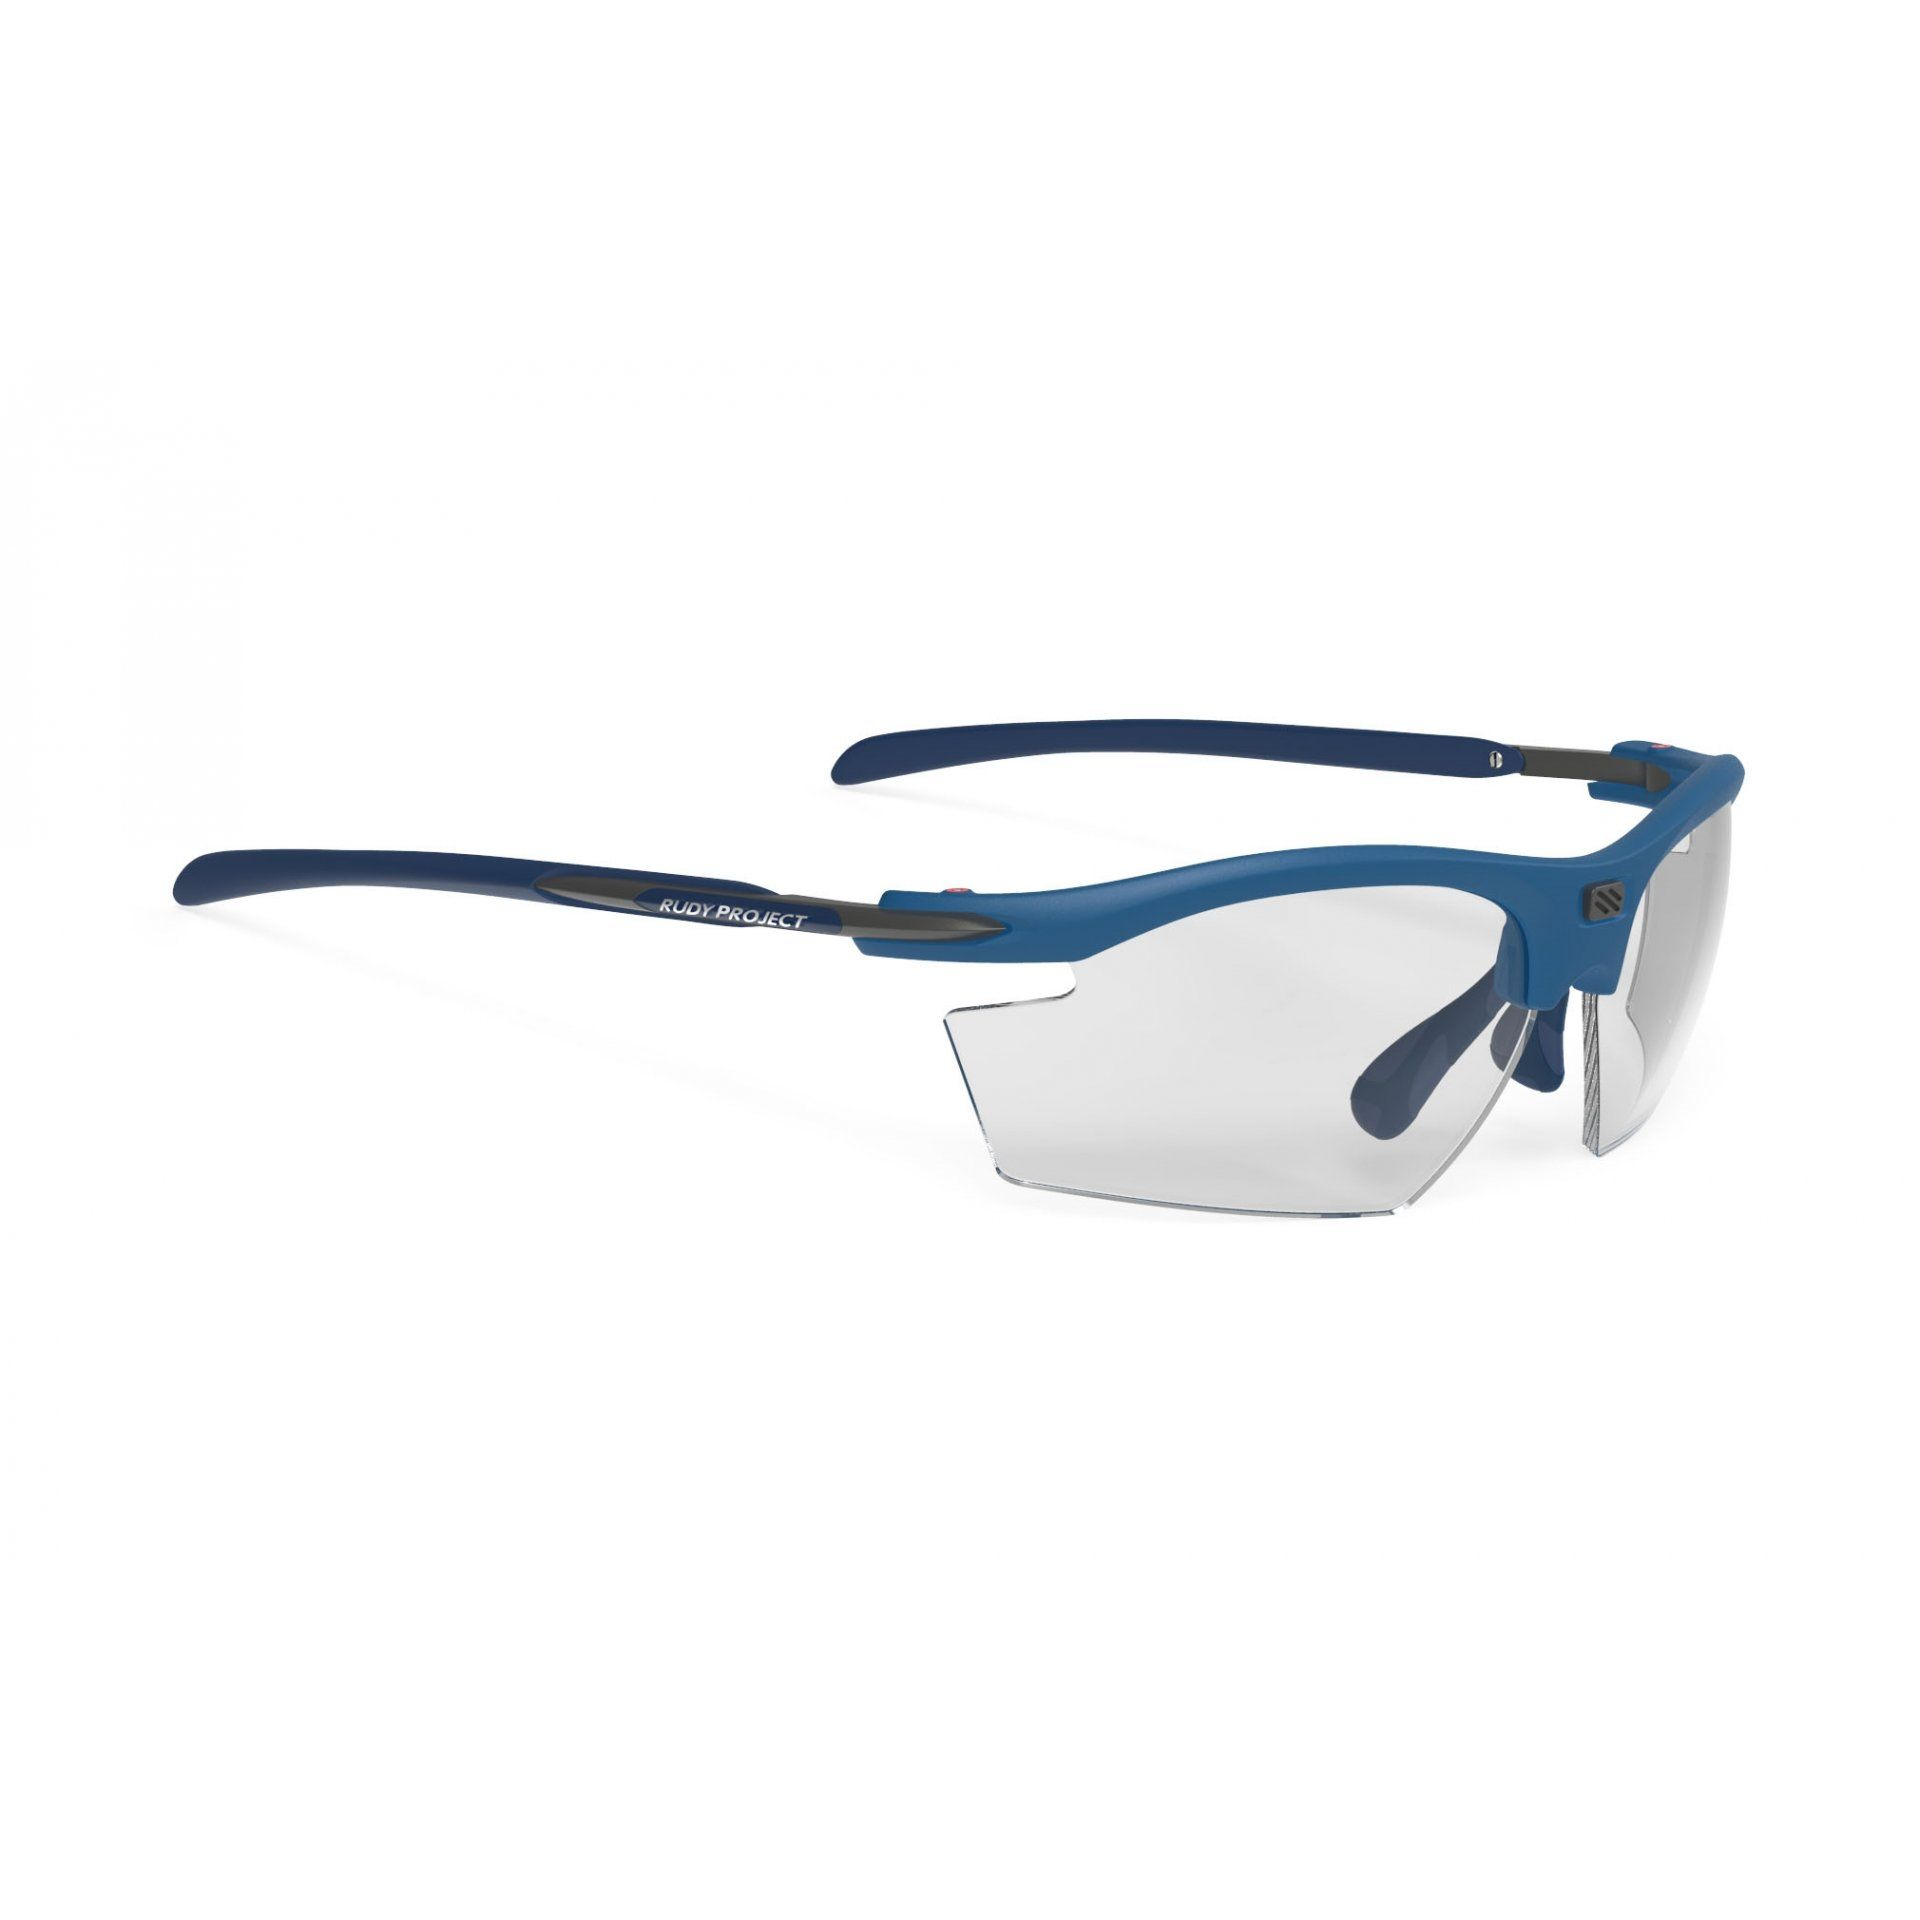 OKULARY RUDY PROJECT RYDON PACIFIC BLUE MATTE+PHOTOCHROMIC BLACK 1